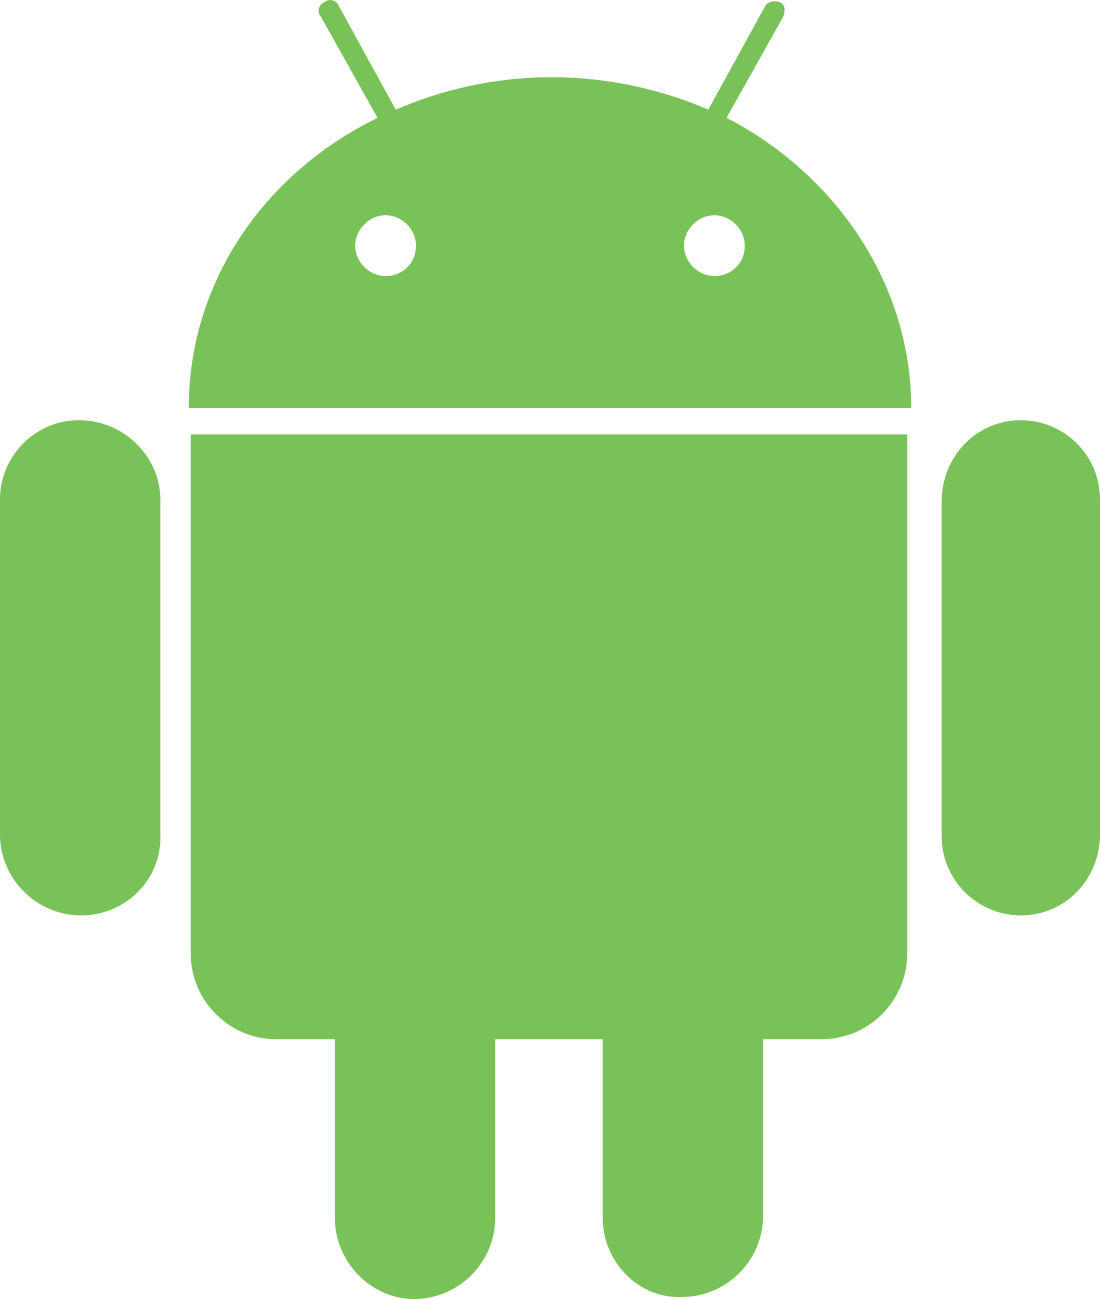 android logo 3 1 - Android Logo